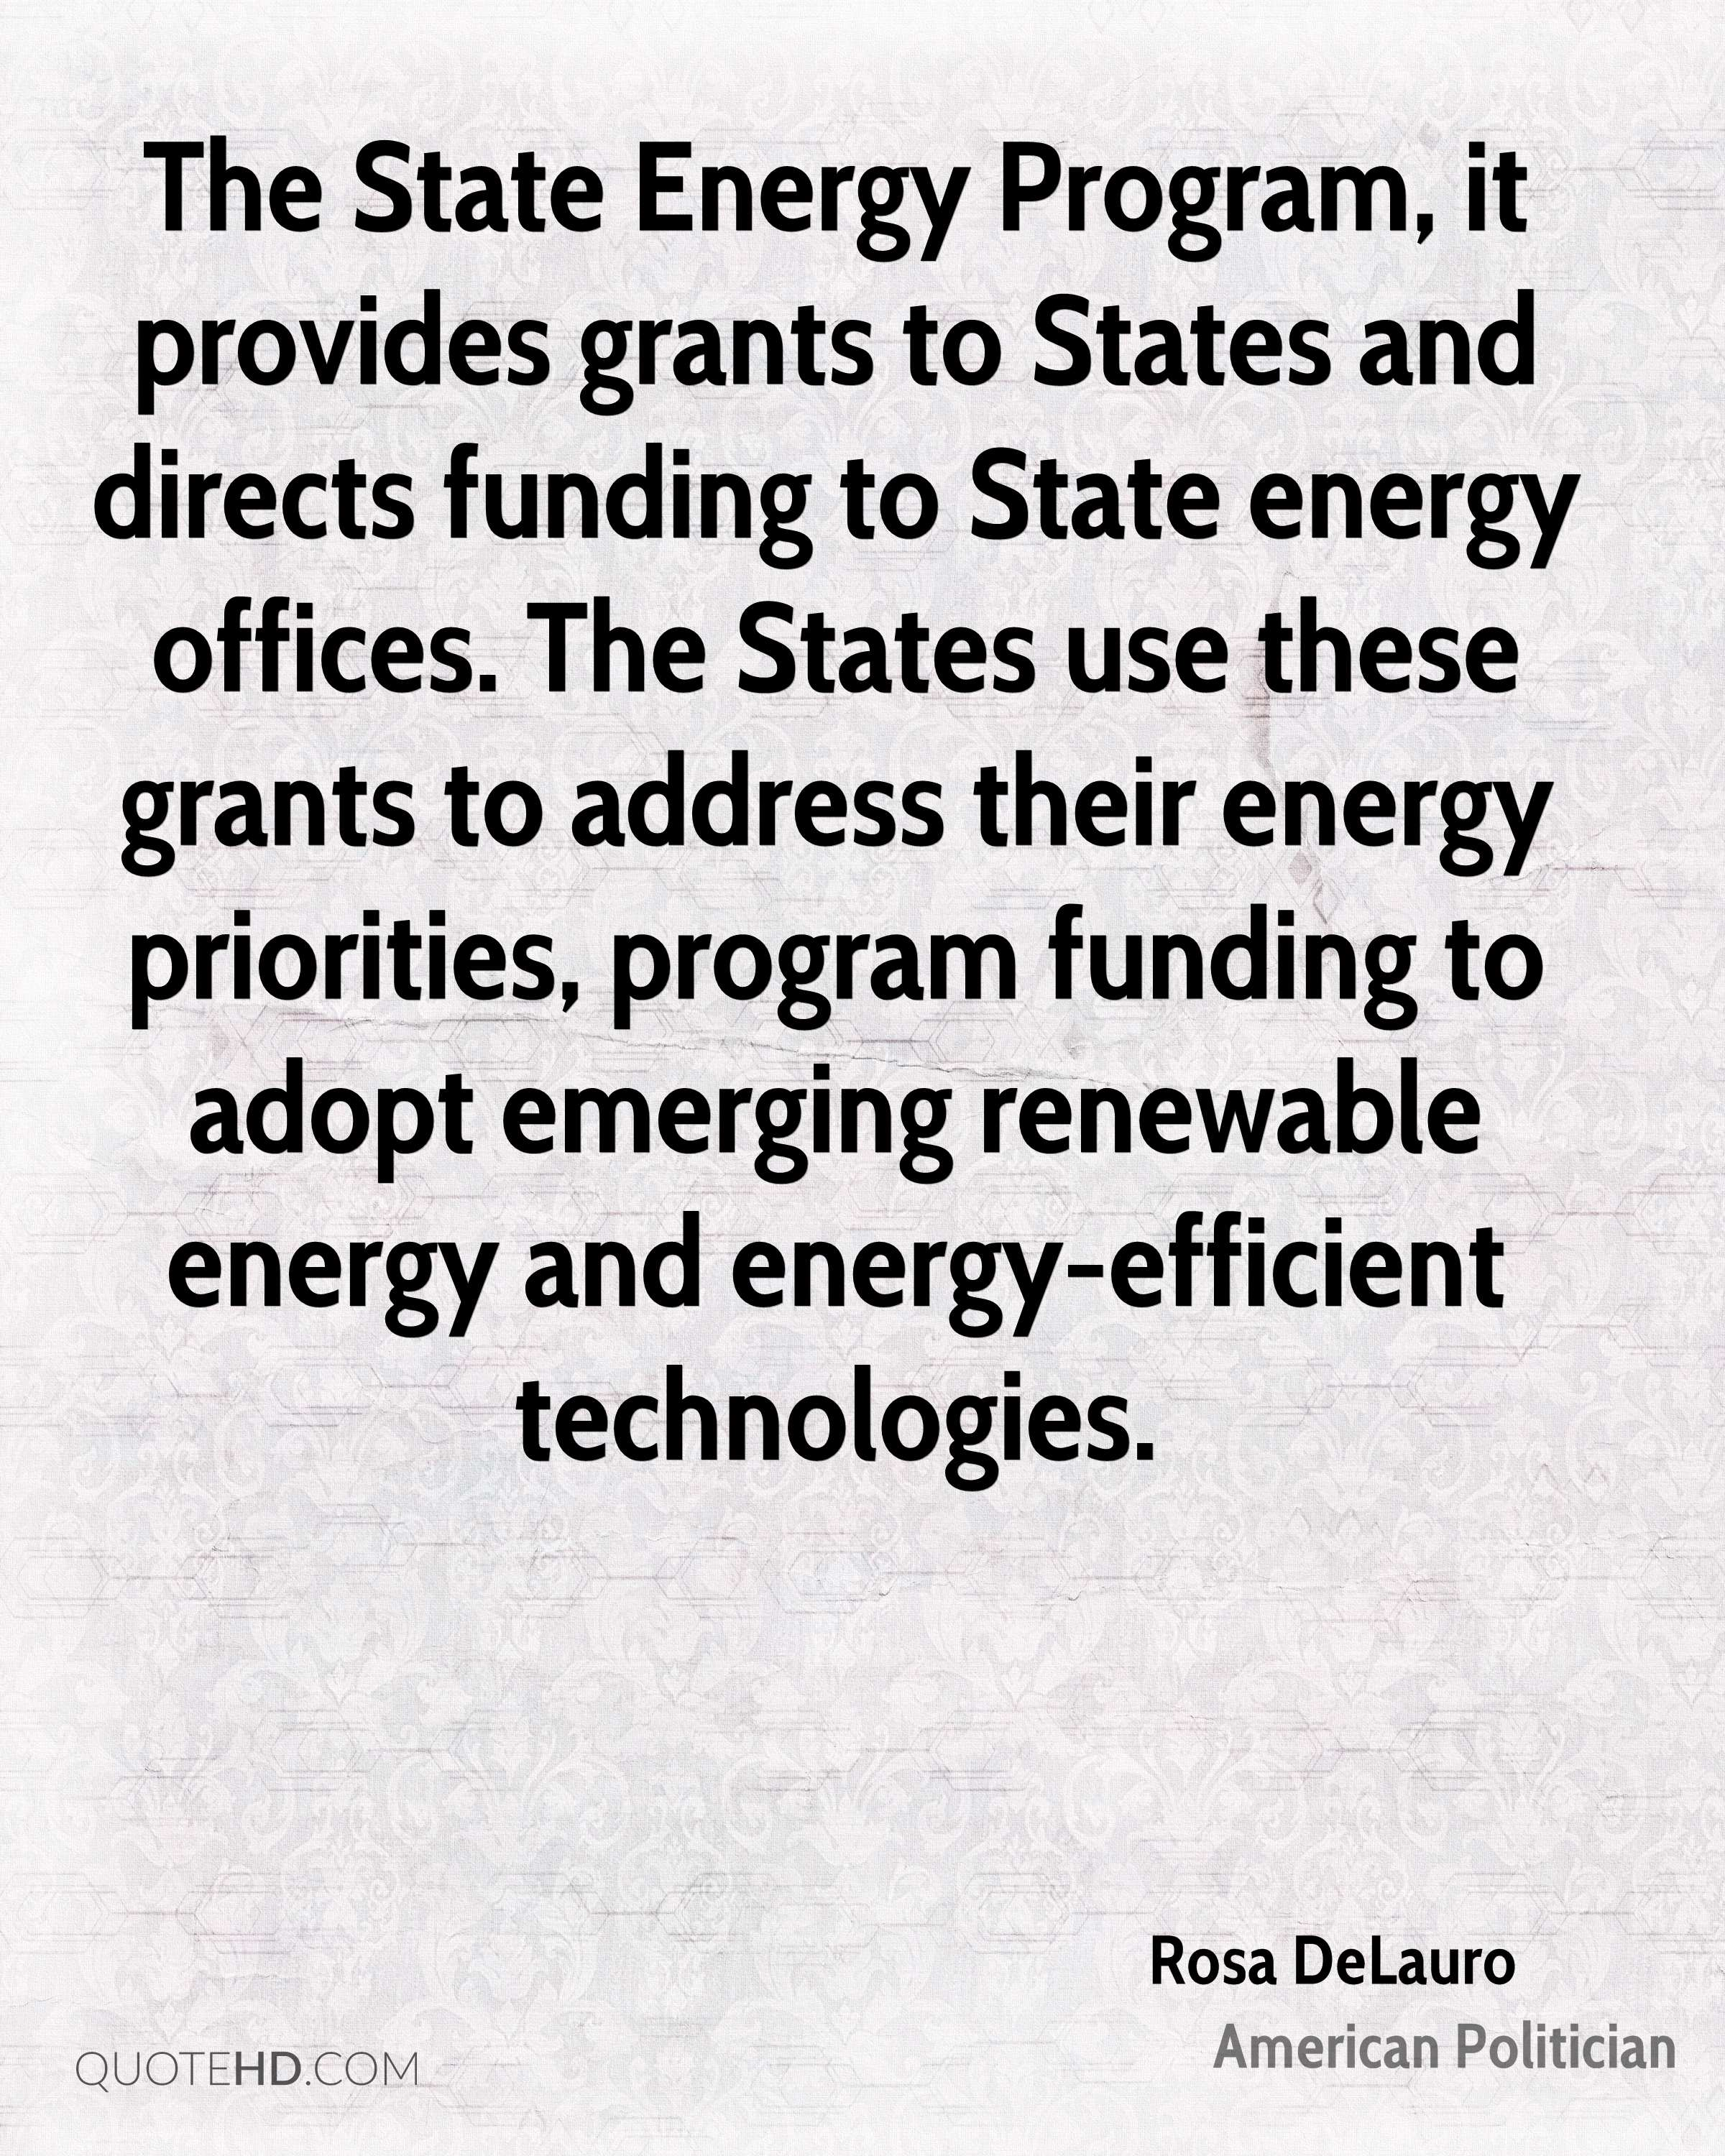 The State Energy Program, it provides grants to States and directs funding to State energy offices. The States use these grants to address their energy priorities, program funding to adopt emerging renewable energy and energy-efficient technologies.